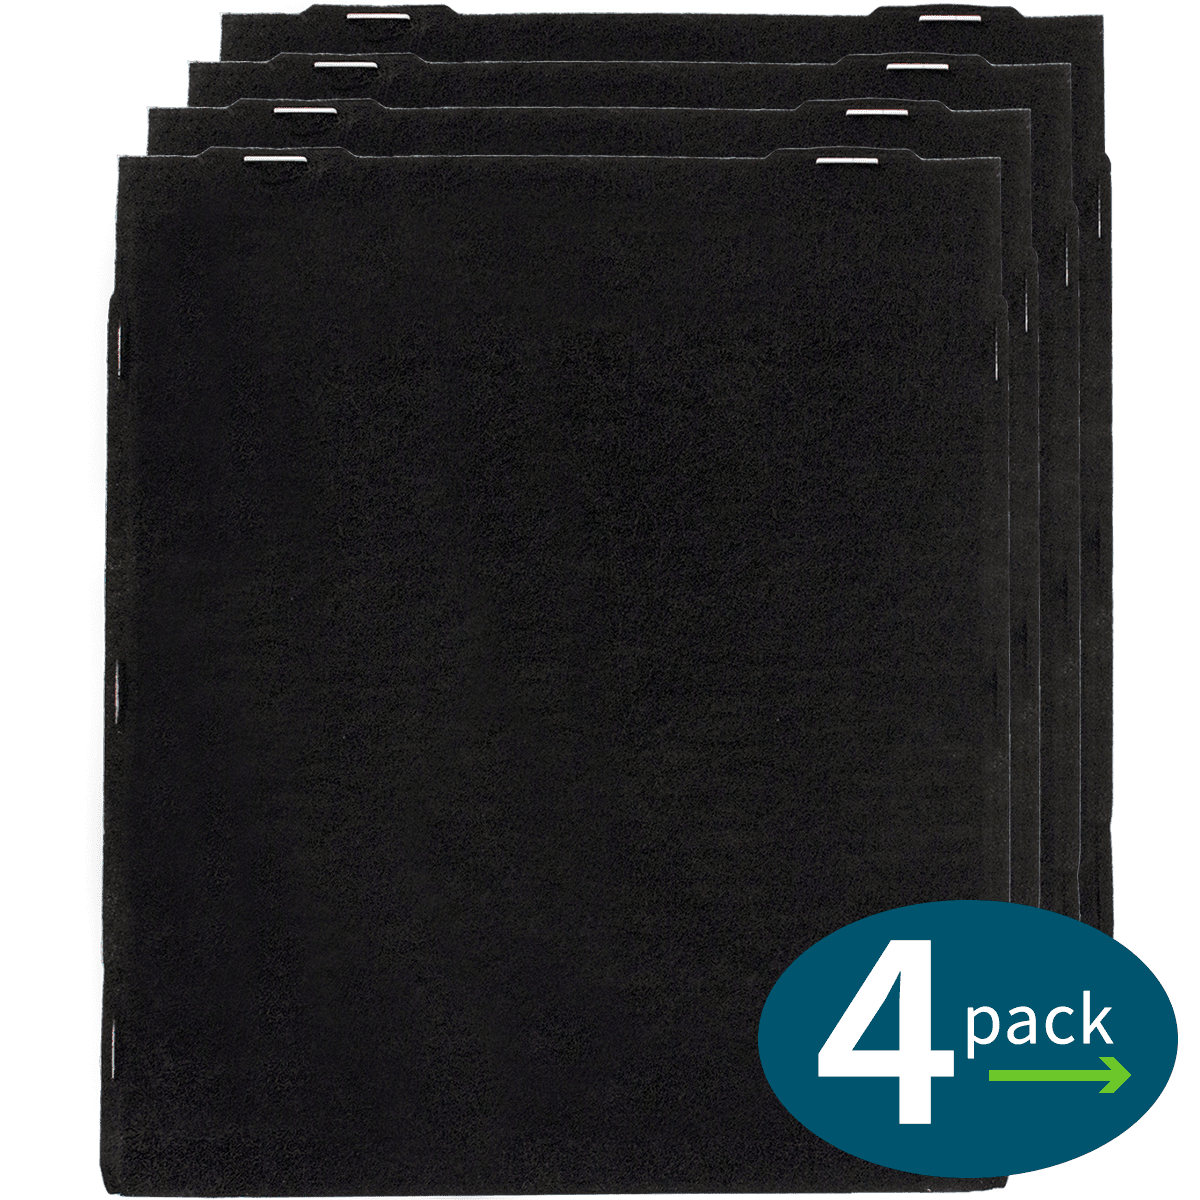 Master Brands HK Large Carbon Pre-filter for Whirlpool Air Purifiers (4 pack) wh6365